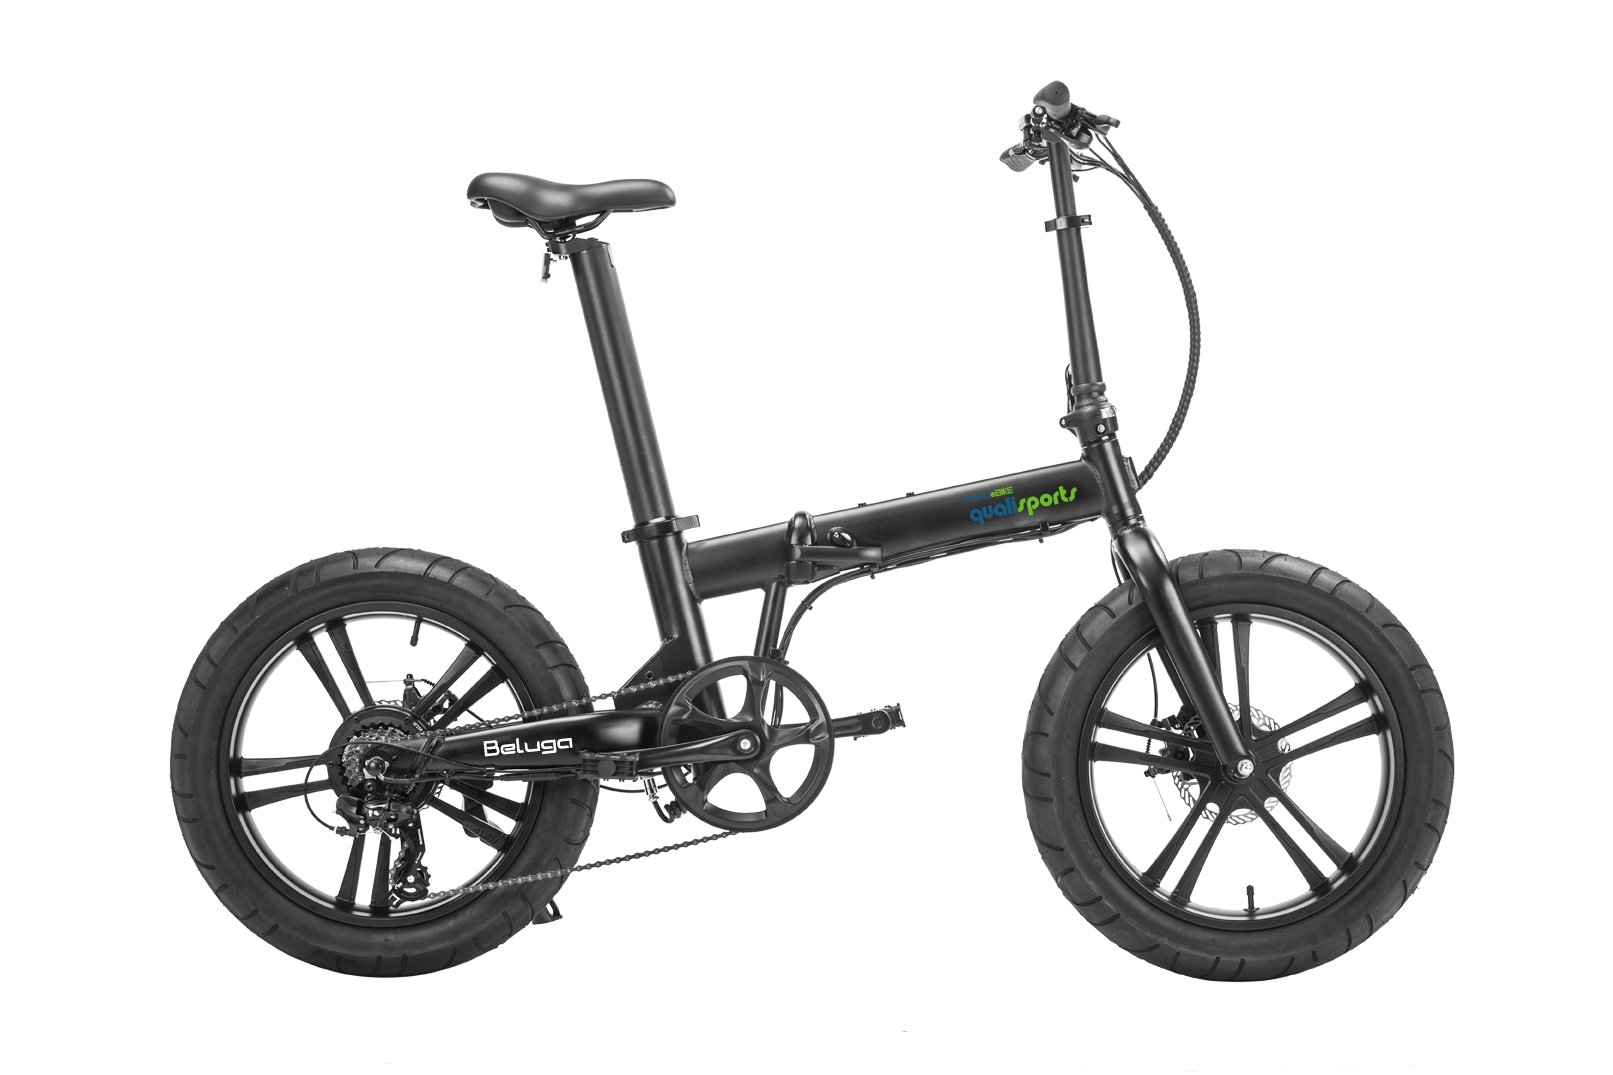 "Qualisports Beluga - 20"" Fat Tire Folding Black Ebike $1349   The BELUGA is our 20"" Fat Tire E-Bike that is getting lots of attention and popularity around the world. It turns heads, it looks trendy and it is FUN to ride.  Our patented, intergraded seat post design is not only stylish and stealthy but it is a practical system by design (Samsung 504WH) offers a game-changing 60 miles range on a single charge.  Beluga's design will make you stand out from other Fat Tire manufactures.  It features 20"" x 4.15"" tires, which rolls over all types of terrain conditions from pavement, sand, hardpack trail, and even snow.  It is equipped with the 350W brushless geared motor and Shimano 7-  speed mechanical gear system and a 5 level electronic shifting that will give you all you need to explore the city with confidence.  The Beluga will accommodate Cyclists ranging in height from 5′to 6'3″ weighing up to 300 lbs. It has 4 riding modes: Normal bike mode, (PAS) Pedal assist mode, Cruise control mode and throttle mode."